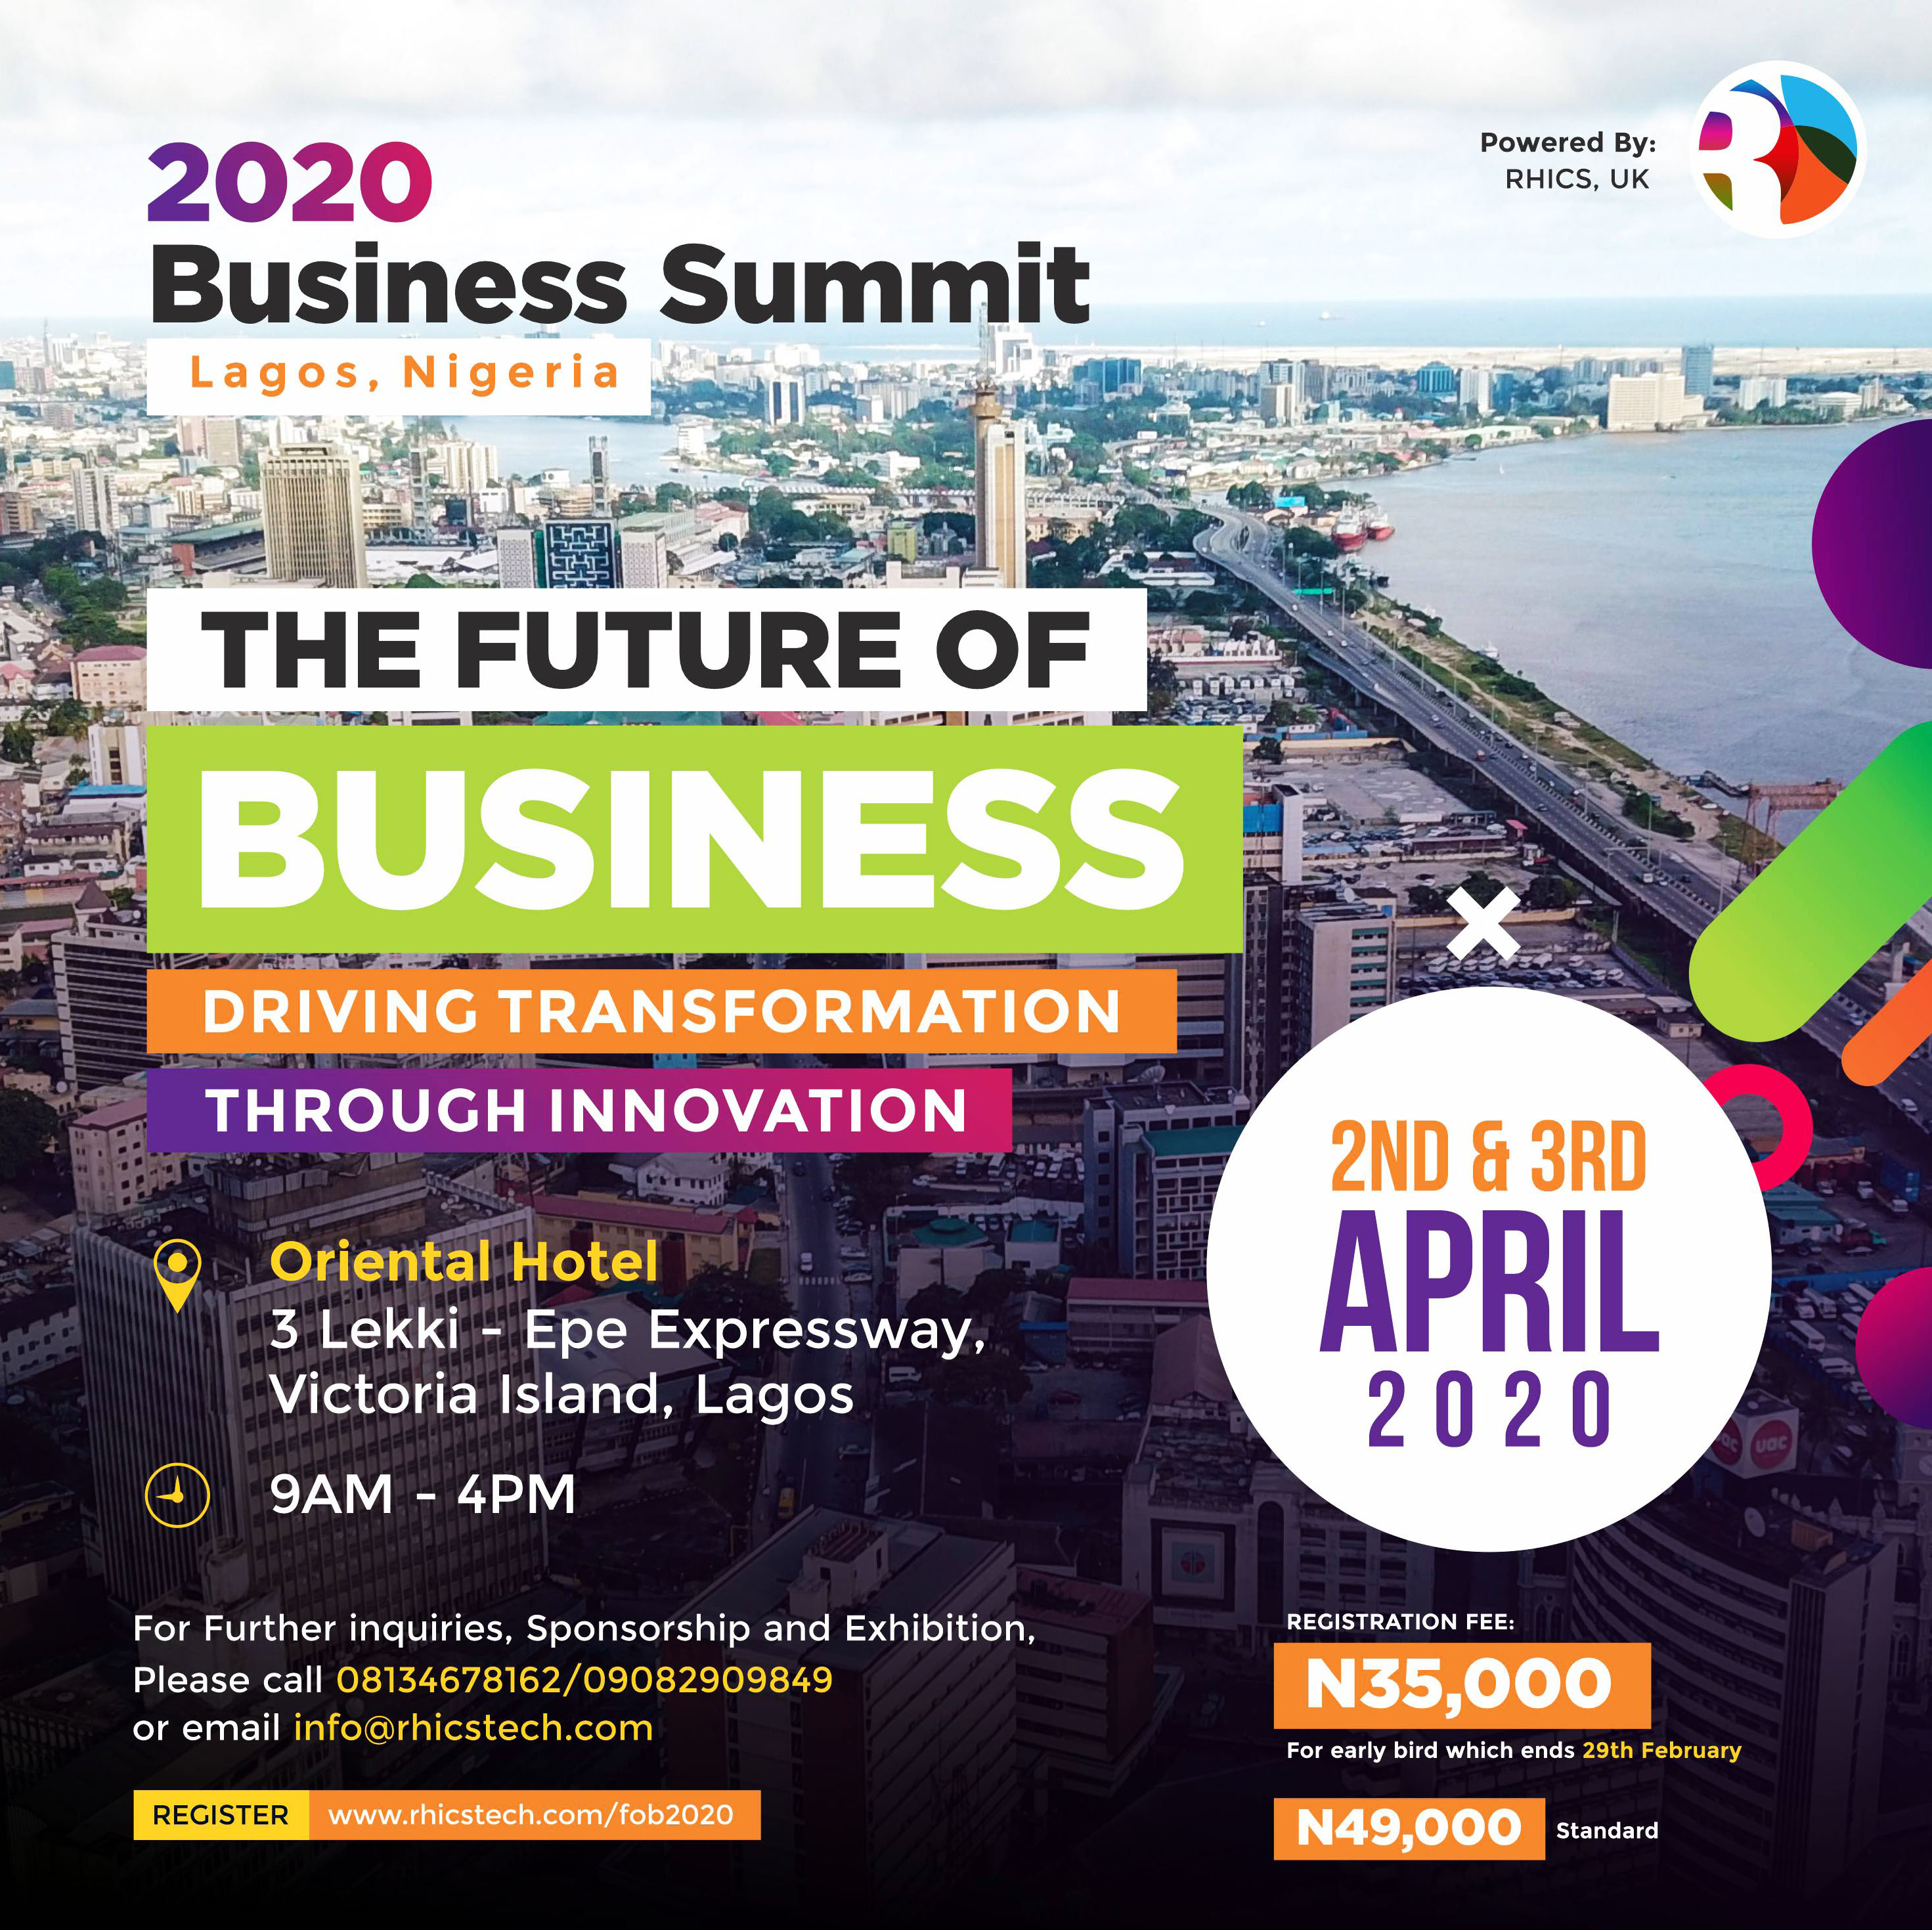 2020 Lagos Business Summit Post free event in Nigeria using tickethub.ng, buy and sell tickets to event